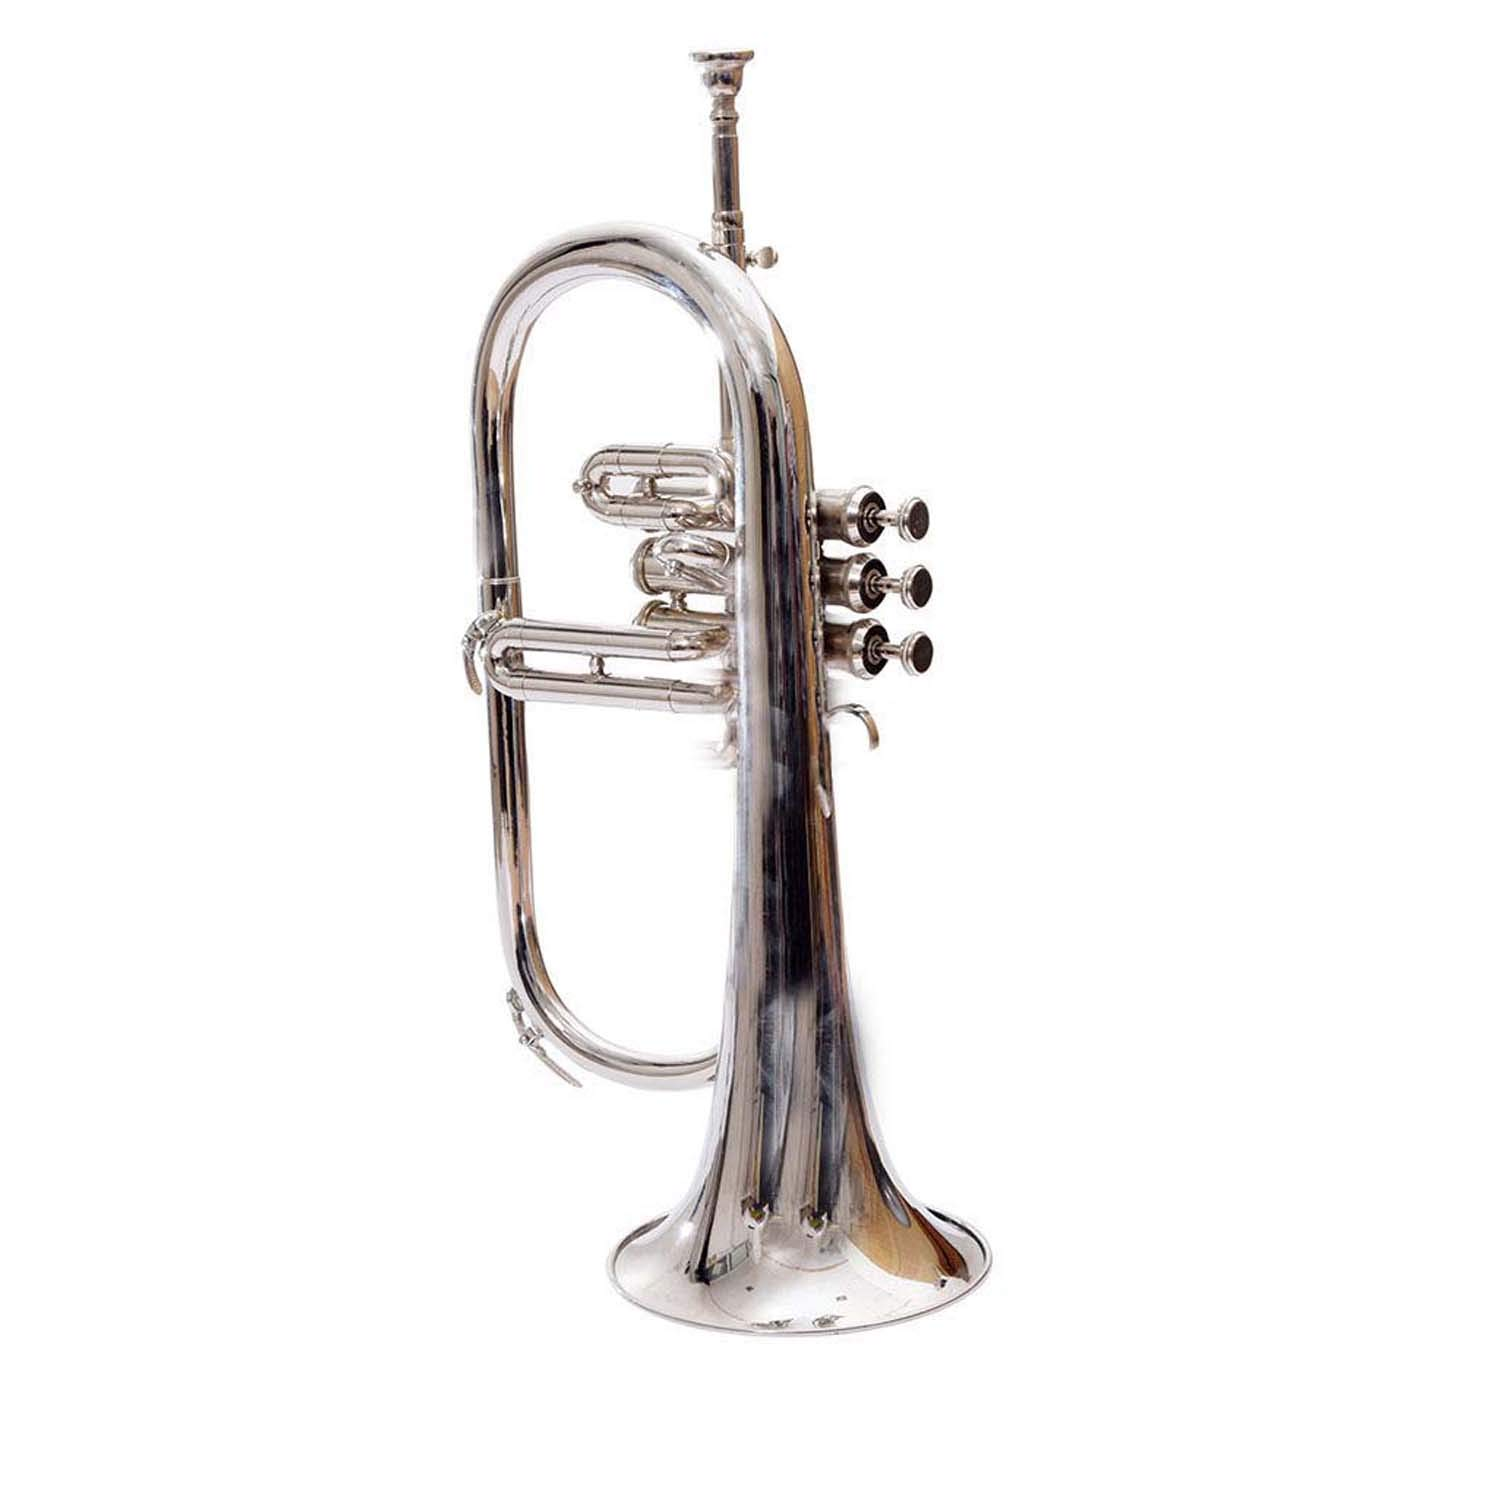 SCEXPORTS Bb Flat Silver Nickel Flugel Horn With Free Hard Case+Mouthpiece by SCEXPORTS